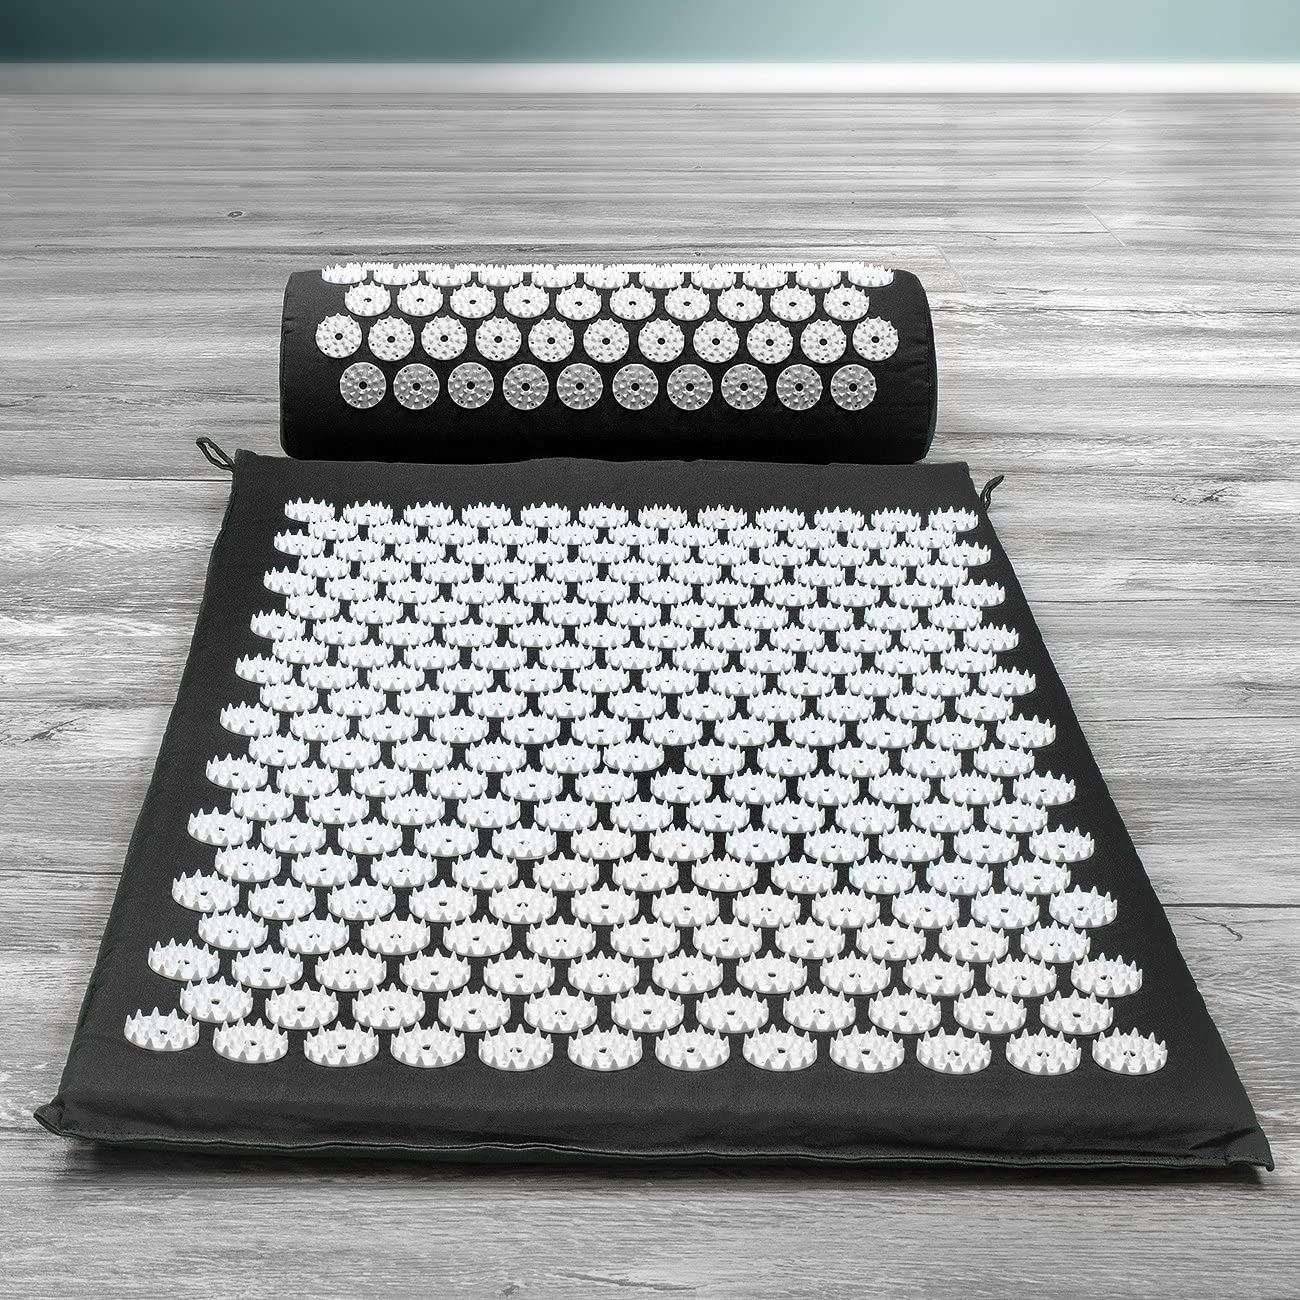 Acupressure Mat and Pillow Set for Back and Neck Pain Relief - Black